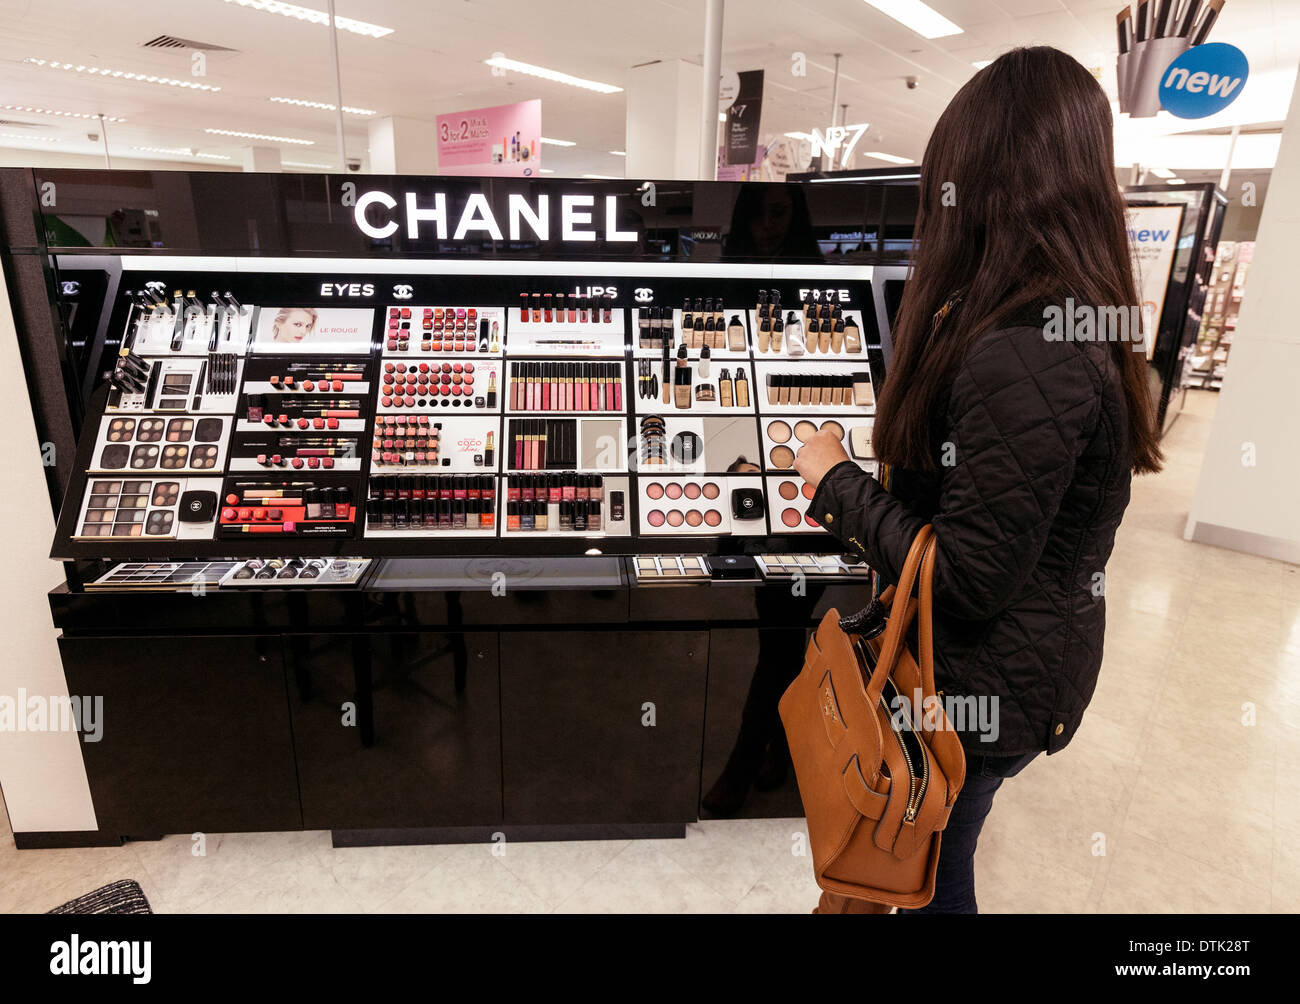 a shopping for and buying chanel cosmetics